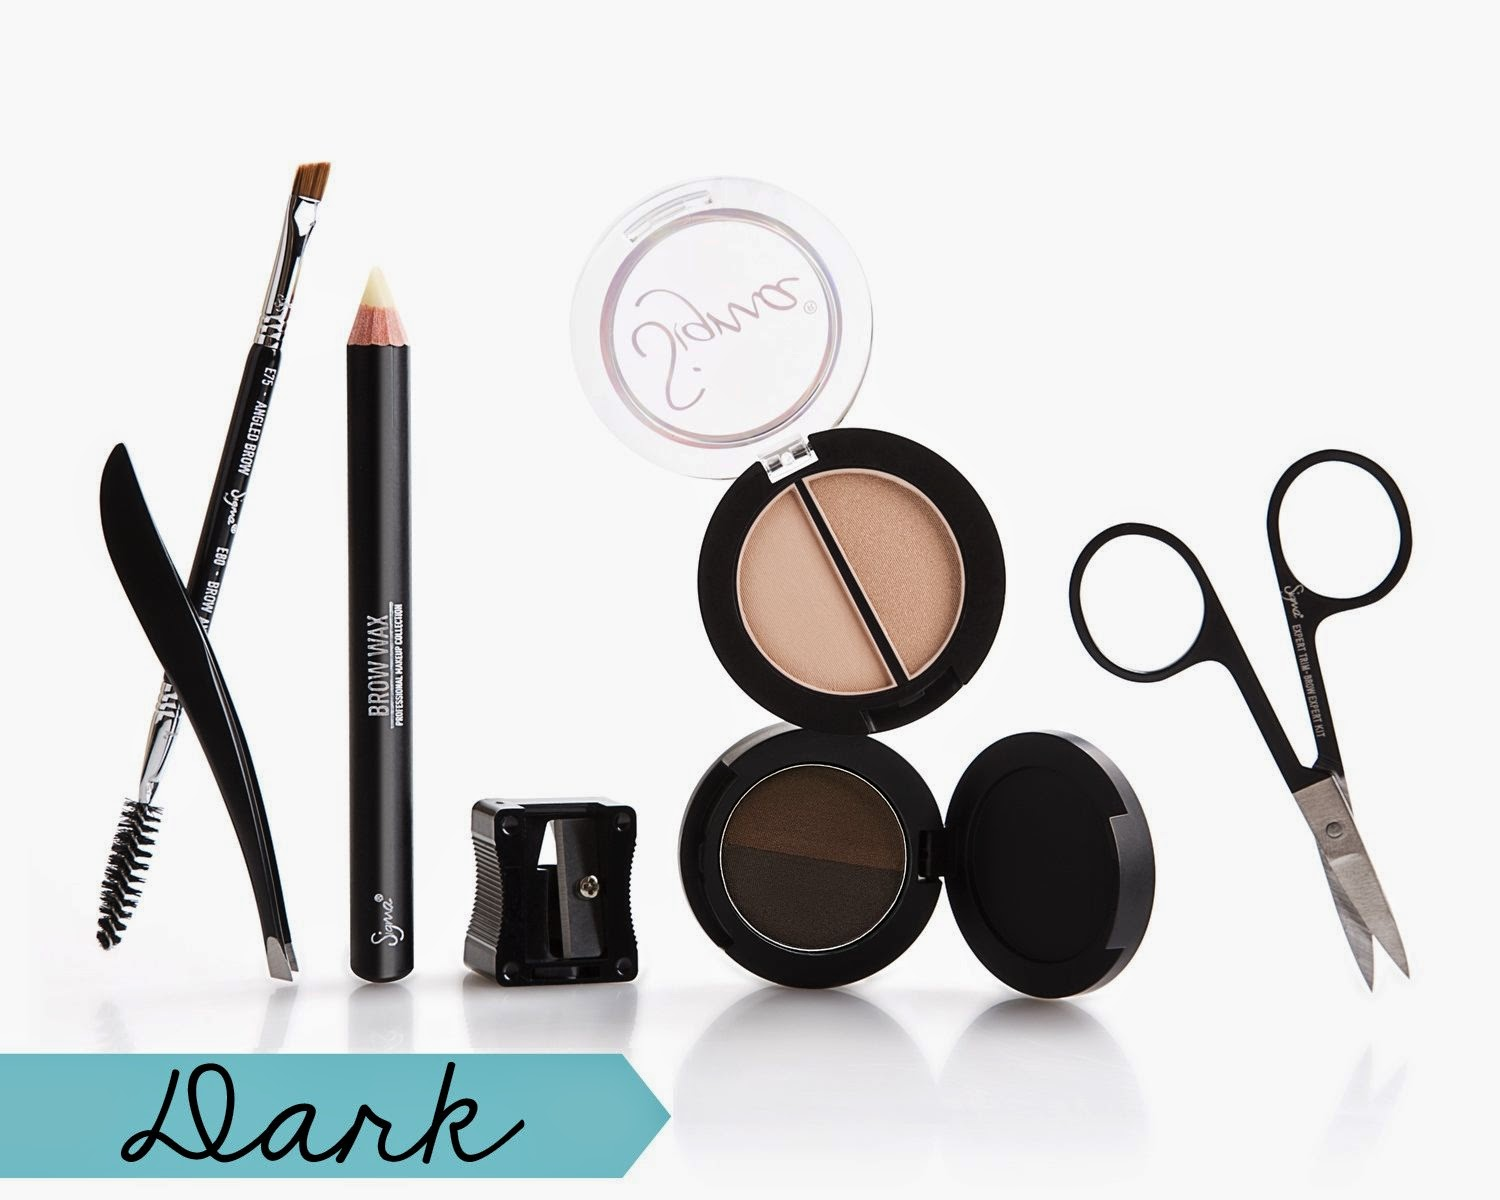 Sigma Brow Expert Kit in Dark — A Modern Mrs.